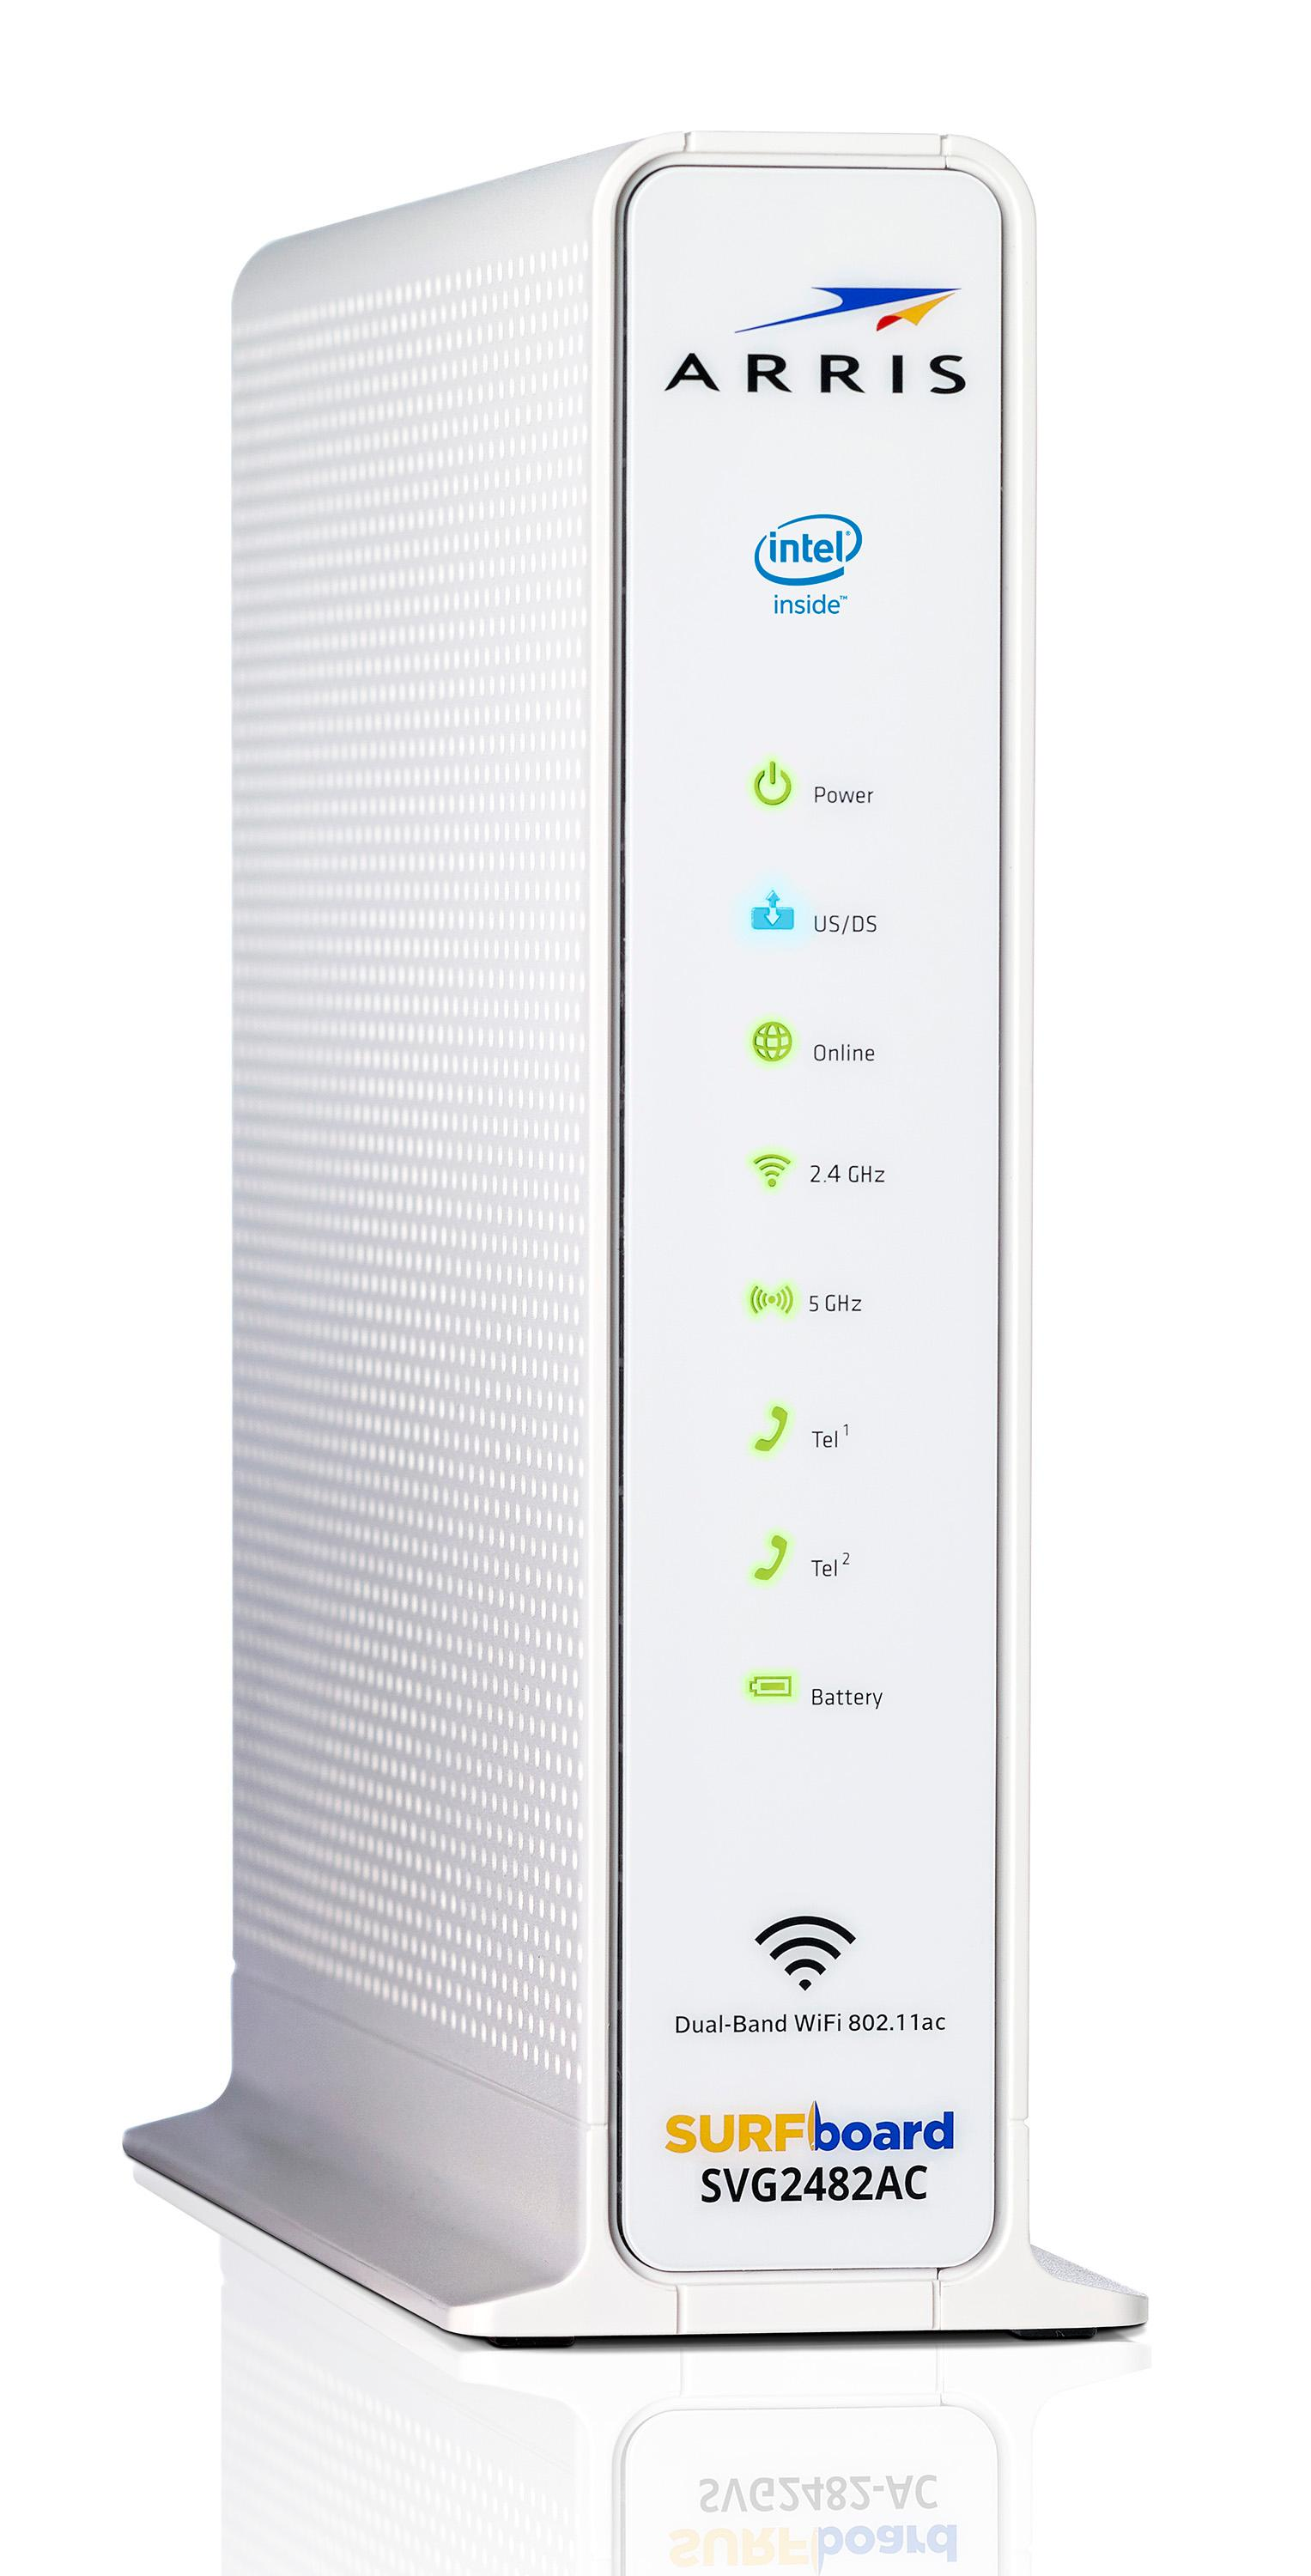 arris surfboard svg2482ac docsis 3 0 cable modem wifi router xfinity voice voip ebay. Black Bedroom Furniture Sets. Home Design Ideas